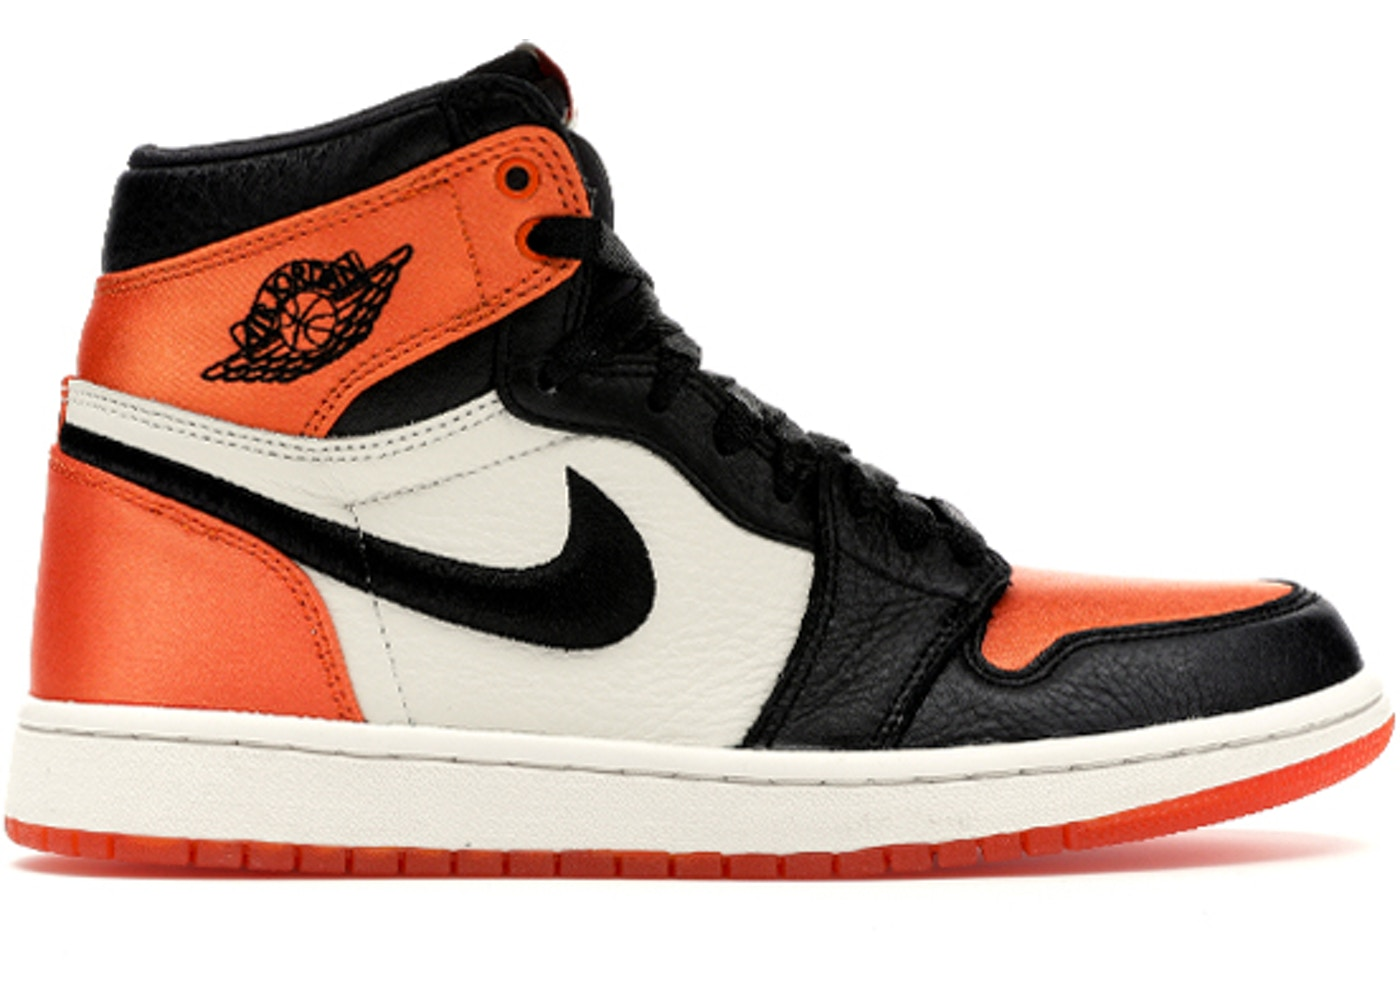 the best attitude 0efd7 0cb17 Jordan 1 Retro High Satin Shattered Backboard (W) - AV3725-010